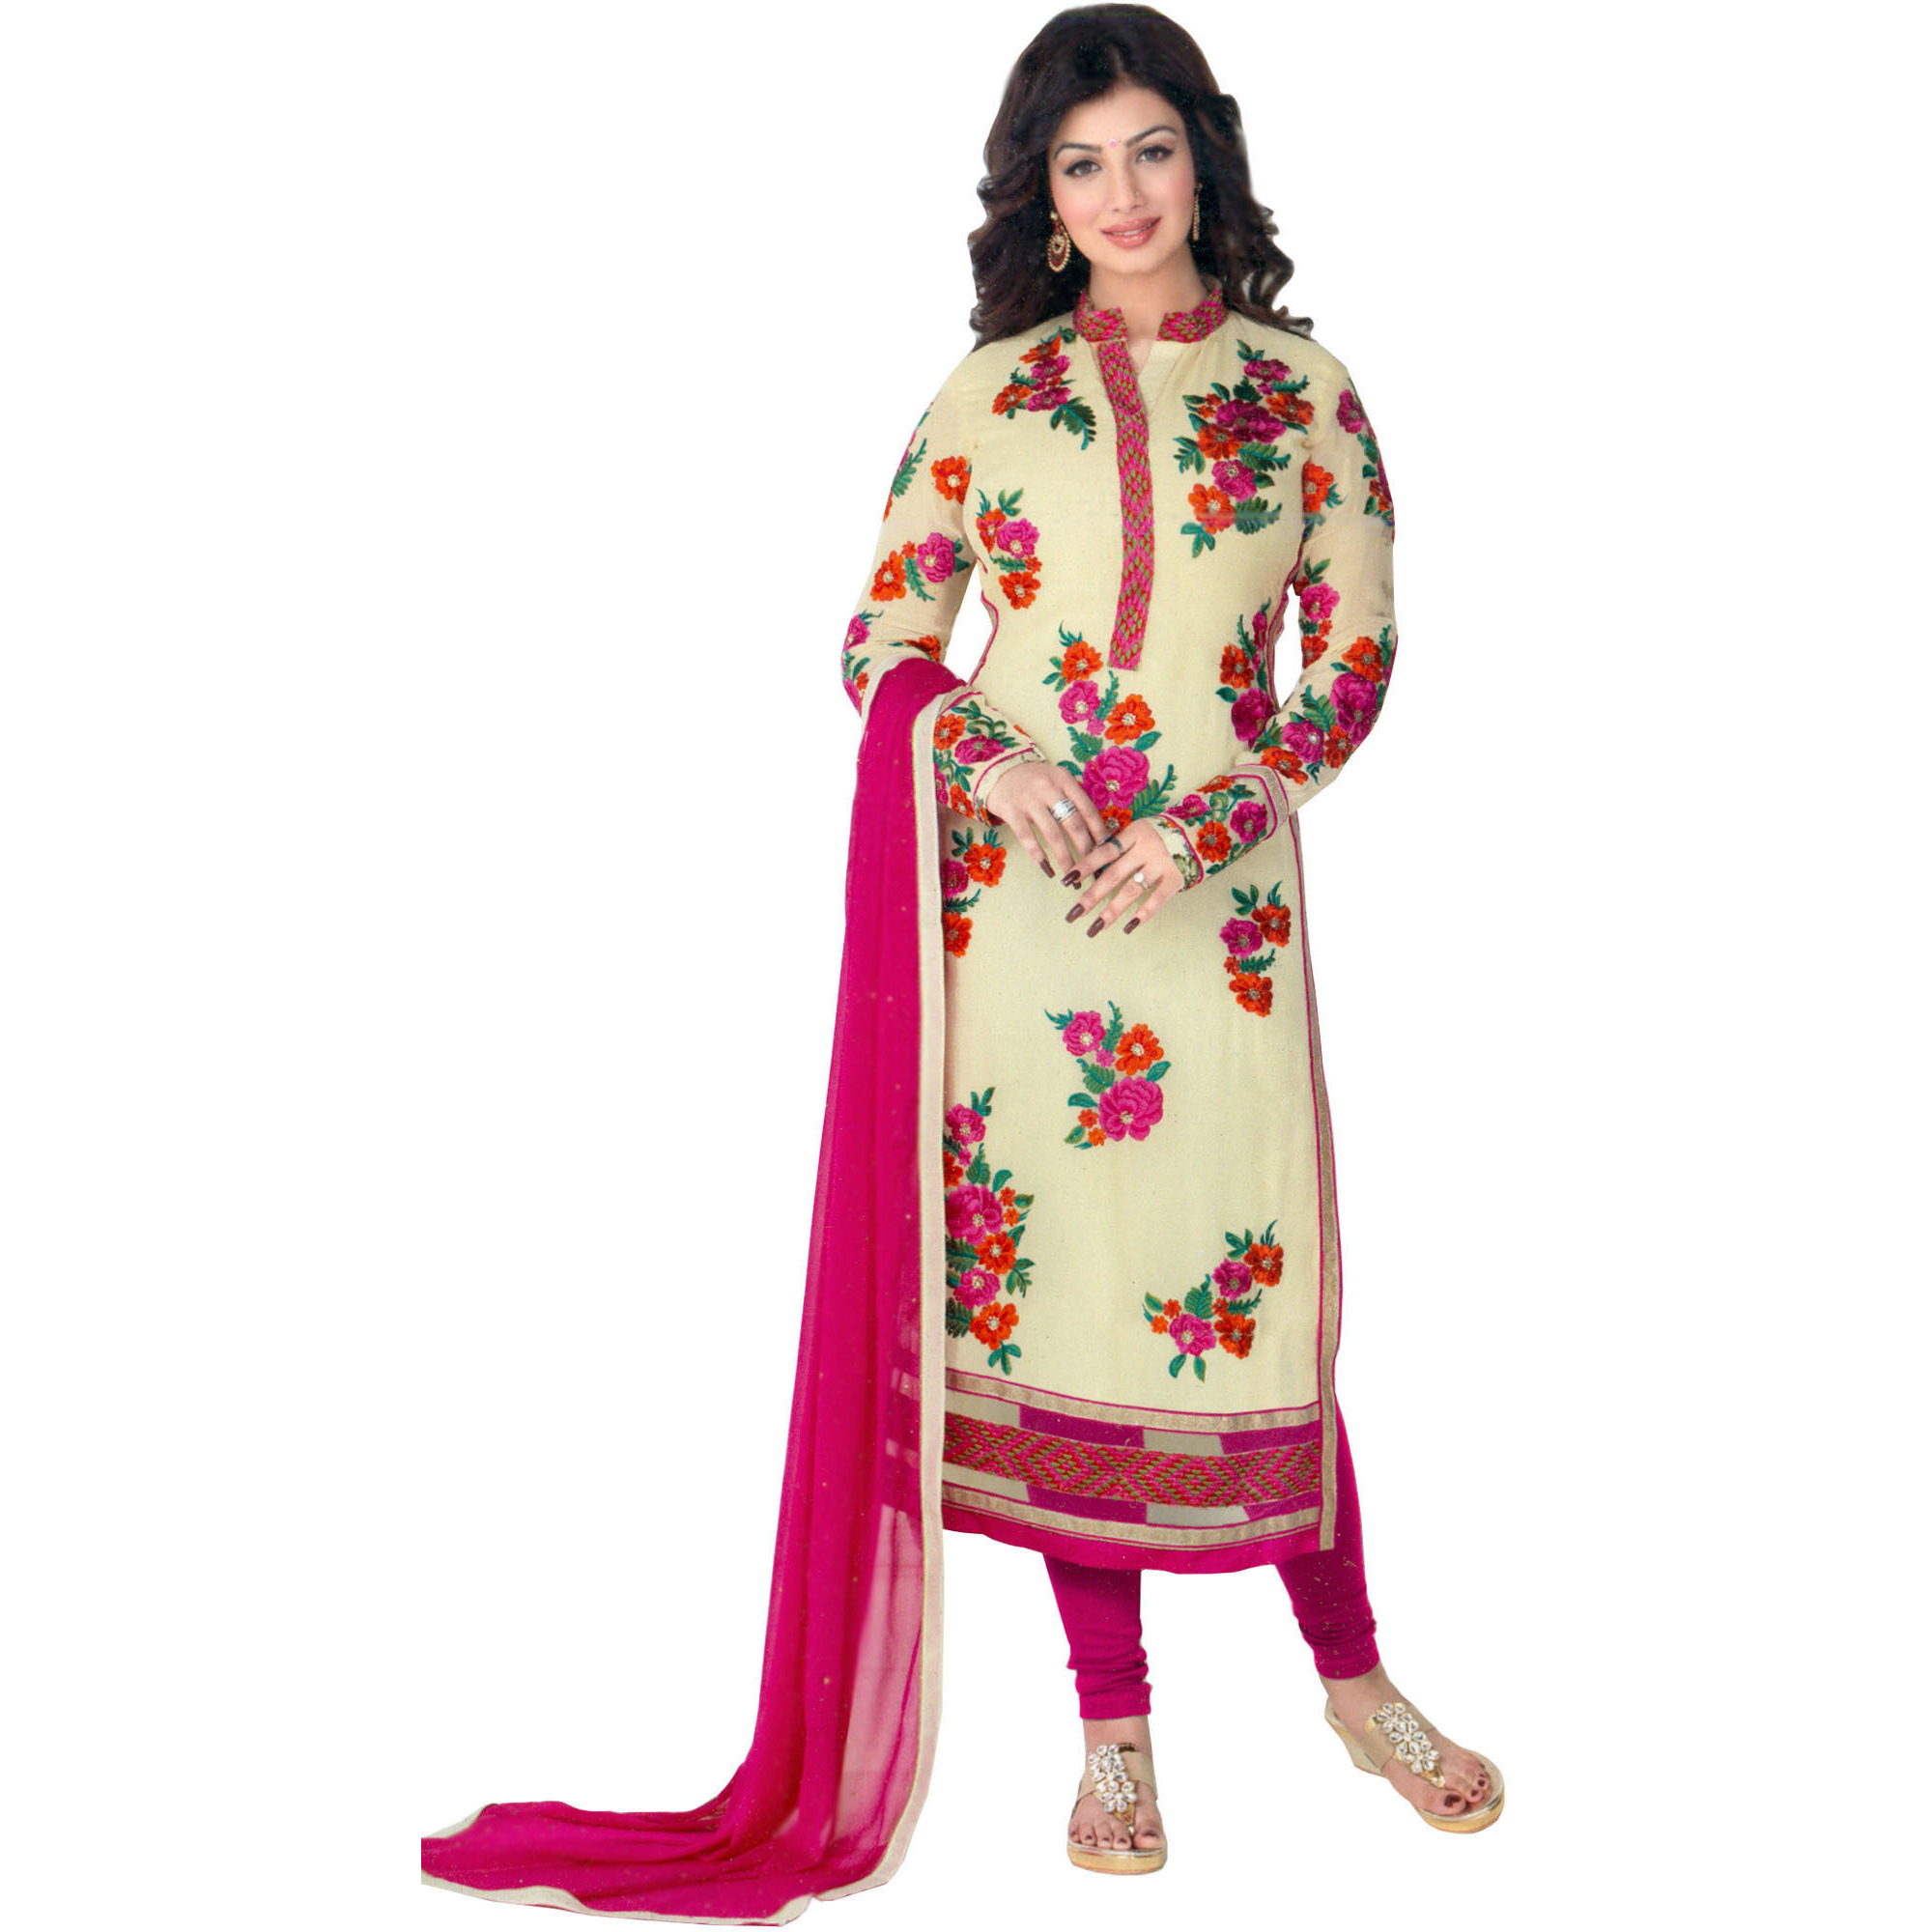 Ivory and Pink Ayesha Long Choodidaar Kameez Suit with Embroidered Flowers and Net Border